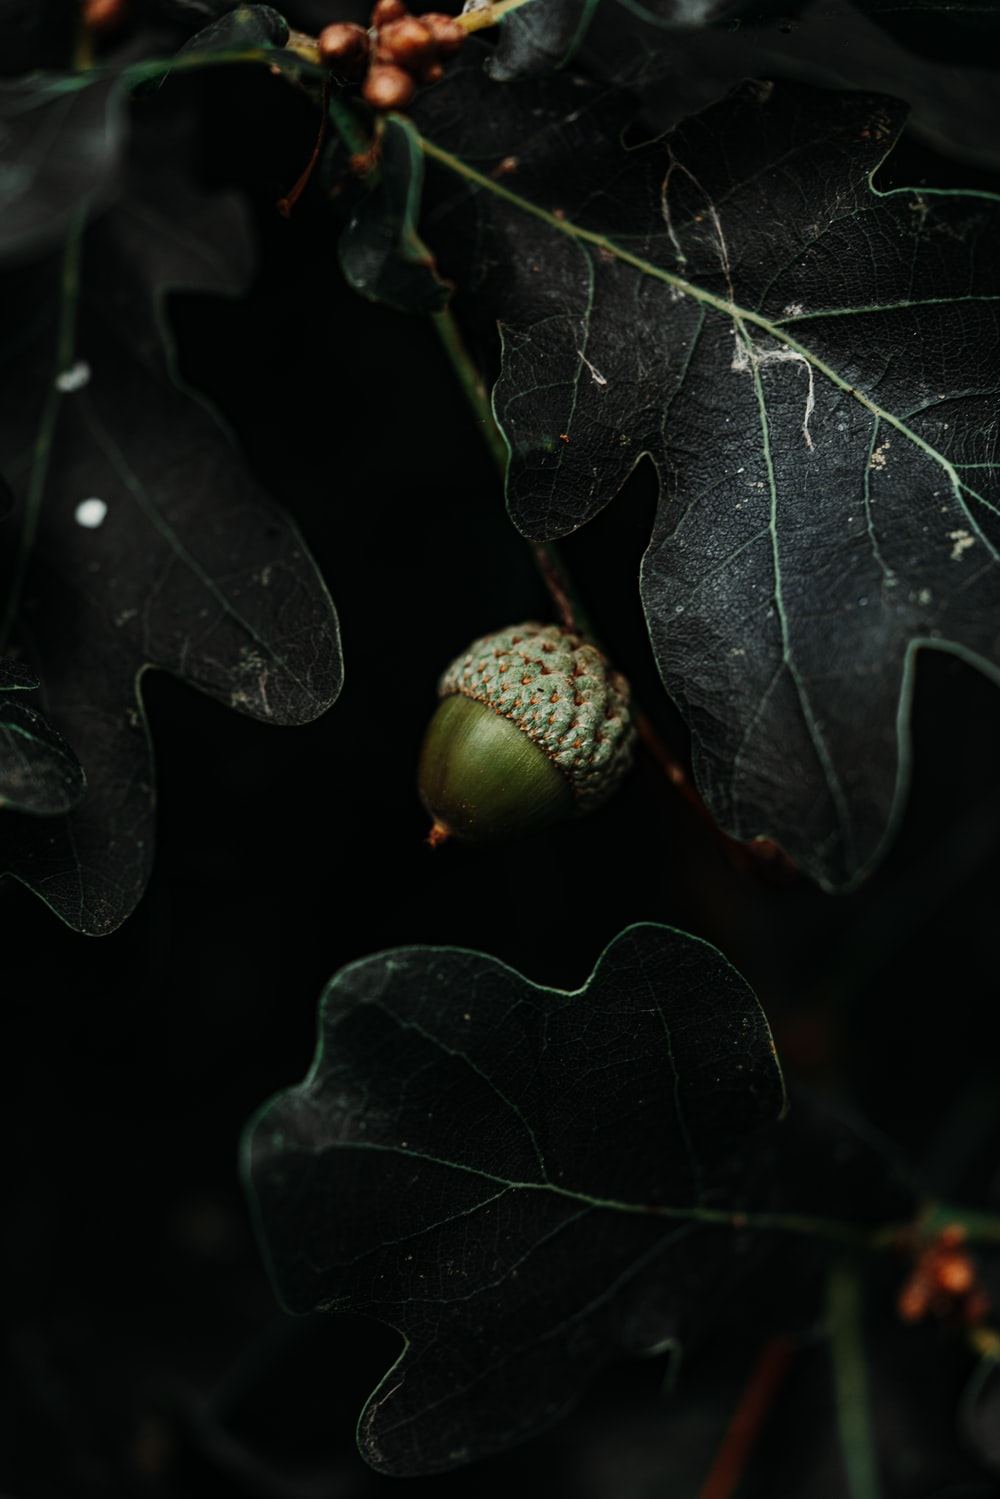 green nut near leafs close-up photography